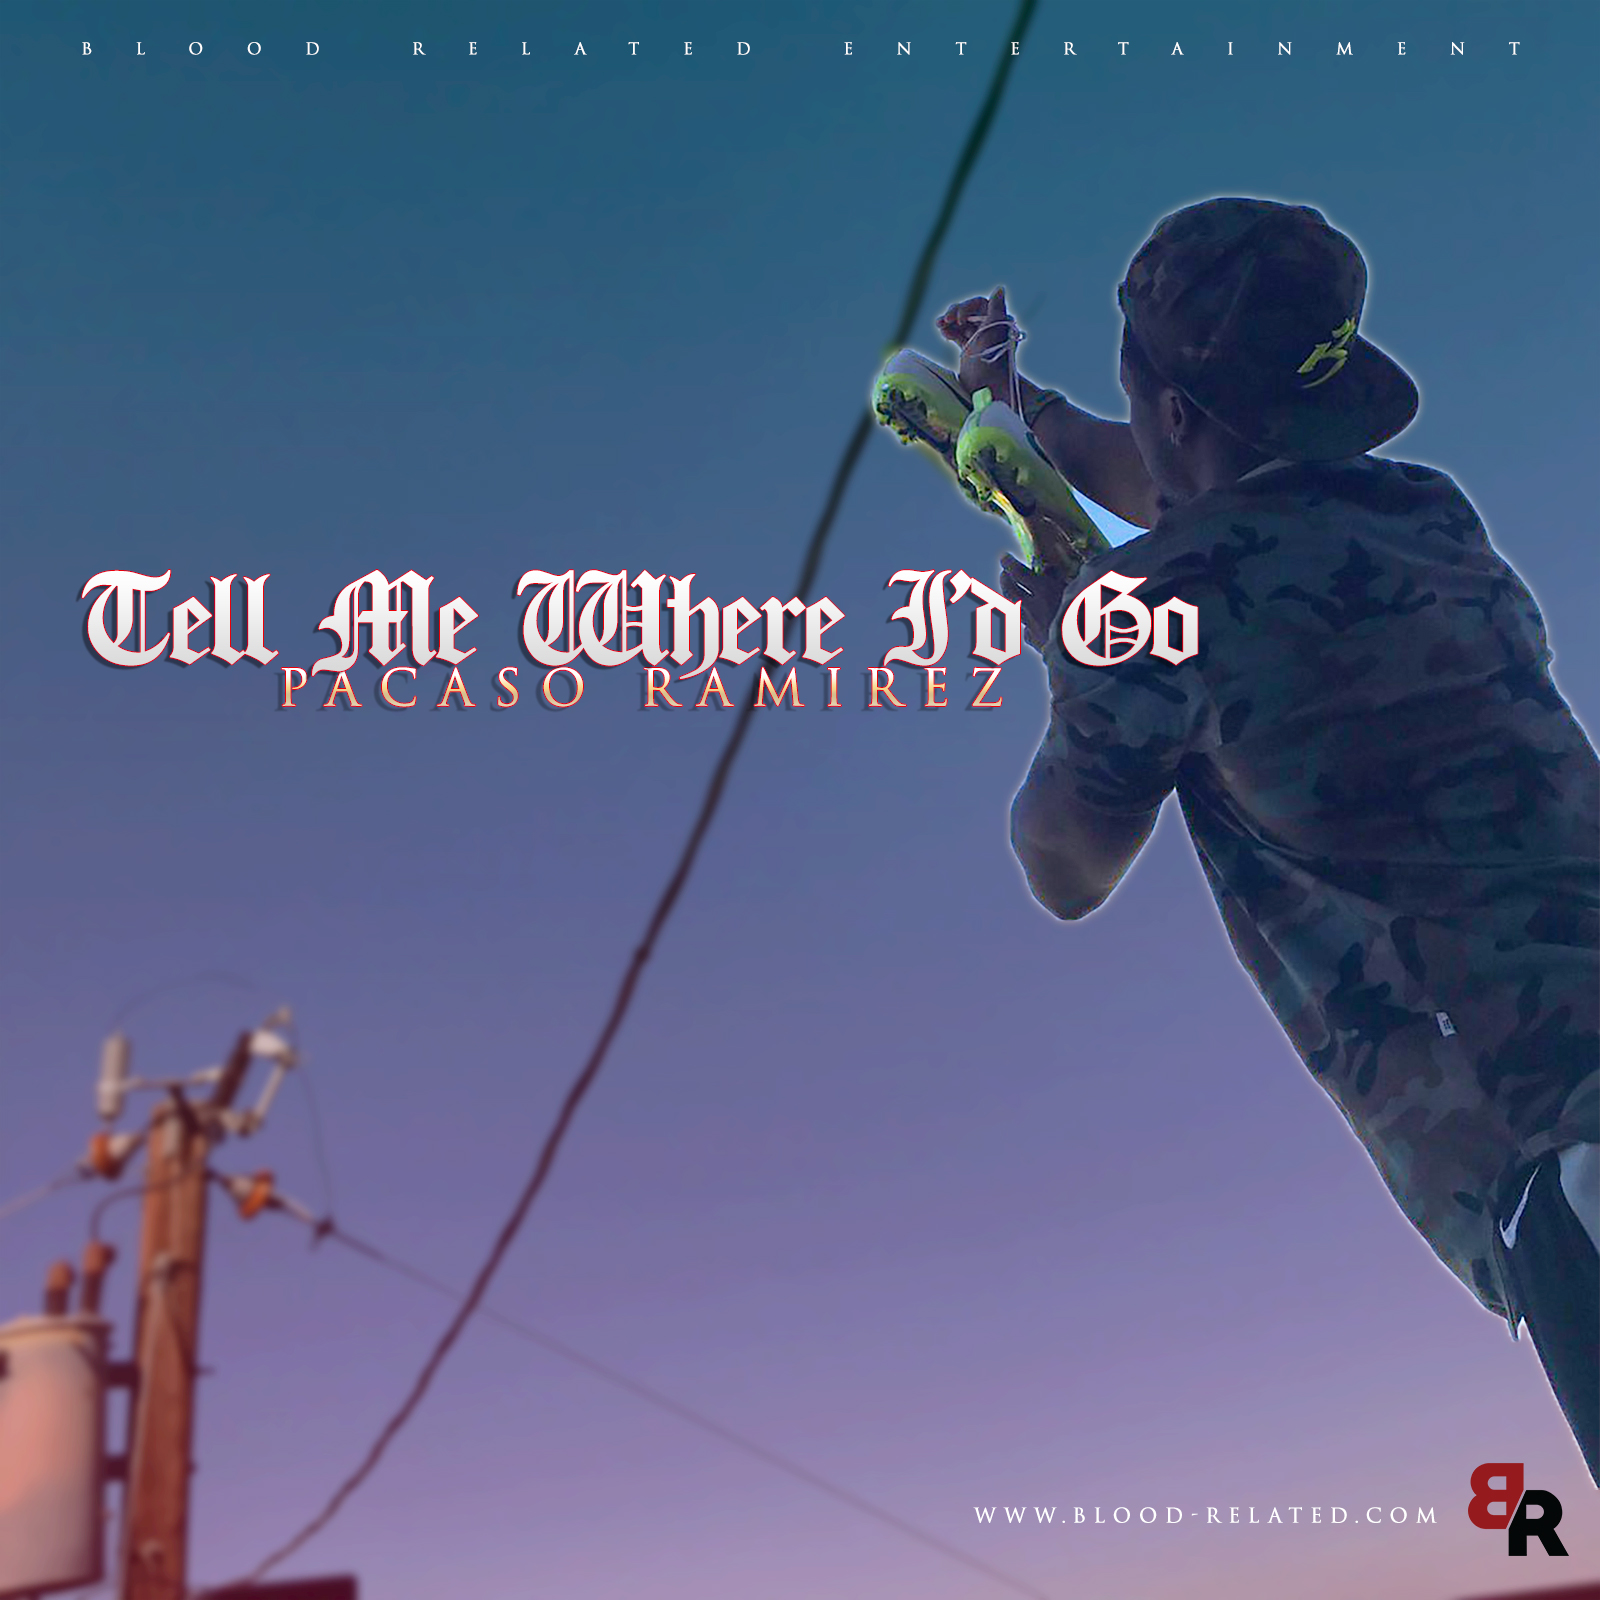 Tell Me Where I'd Go by Pacaso Ramirez [Single - Free Download]